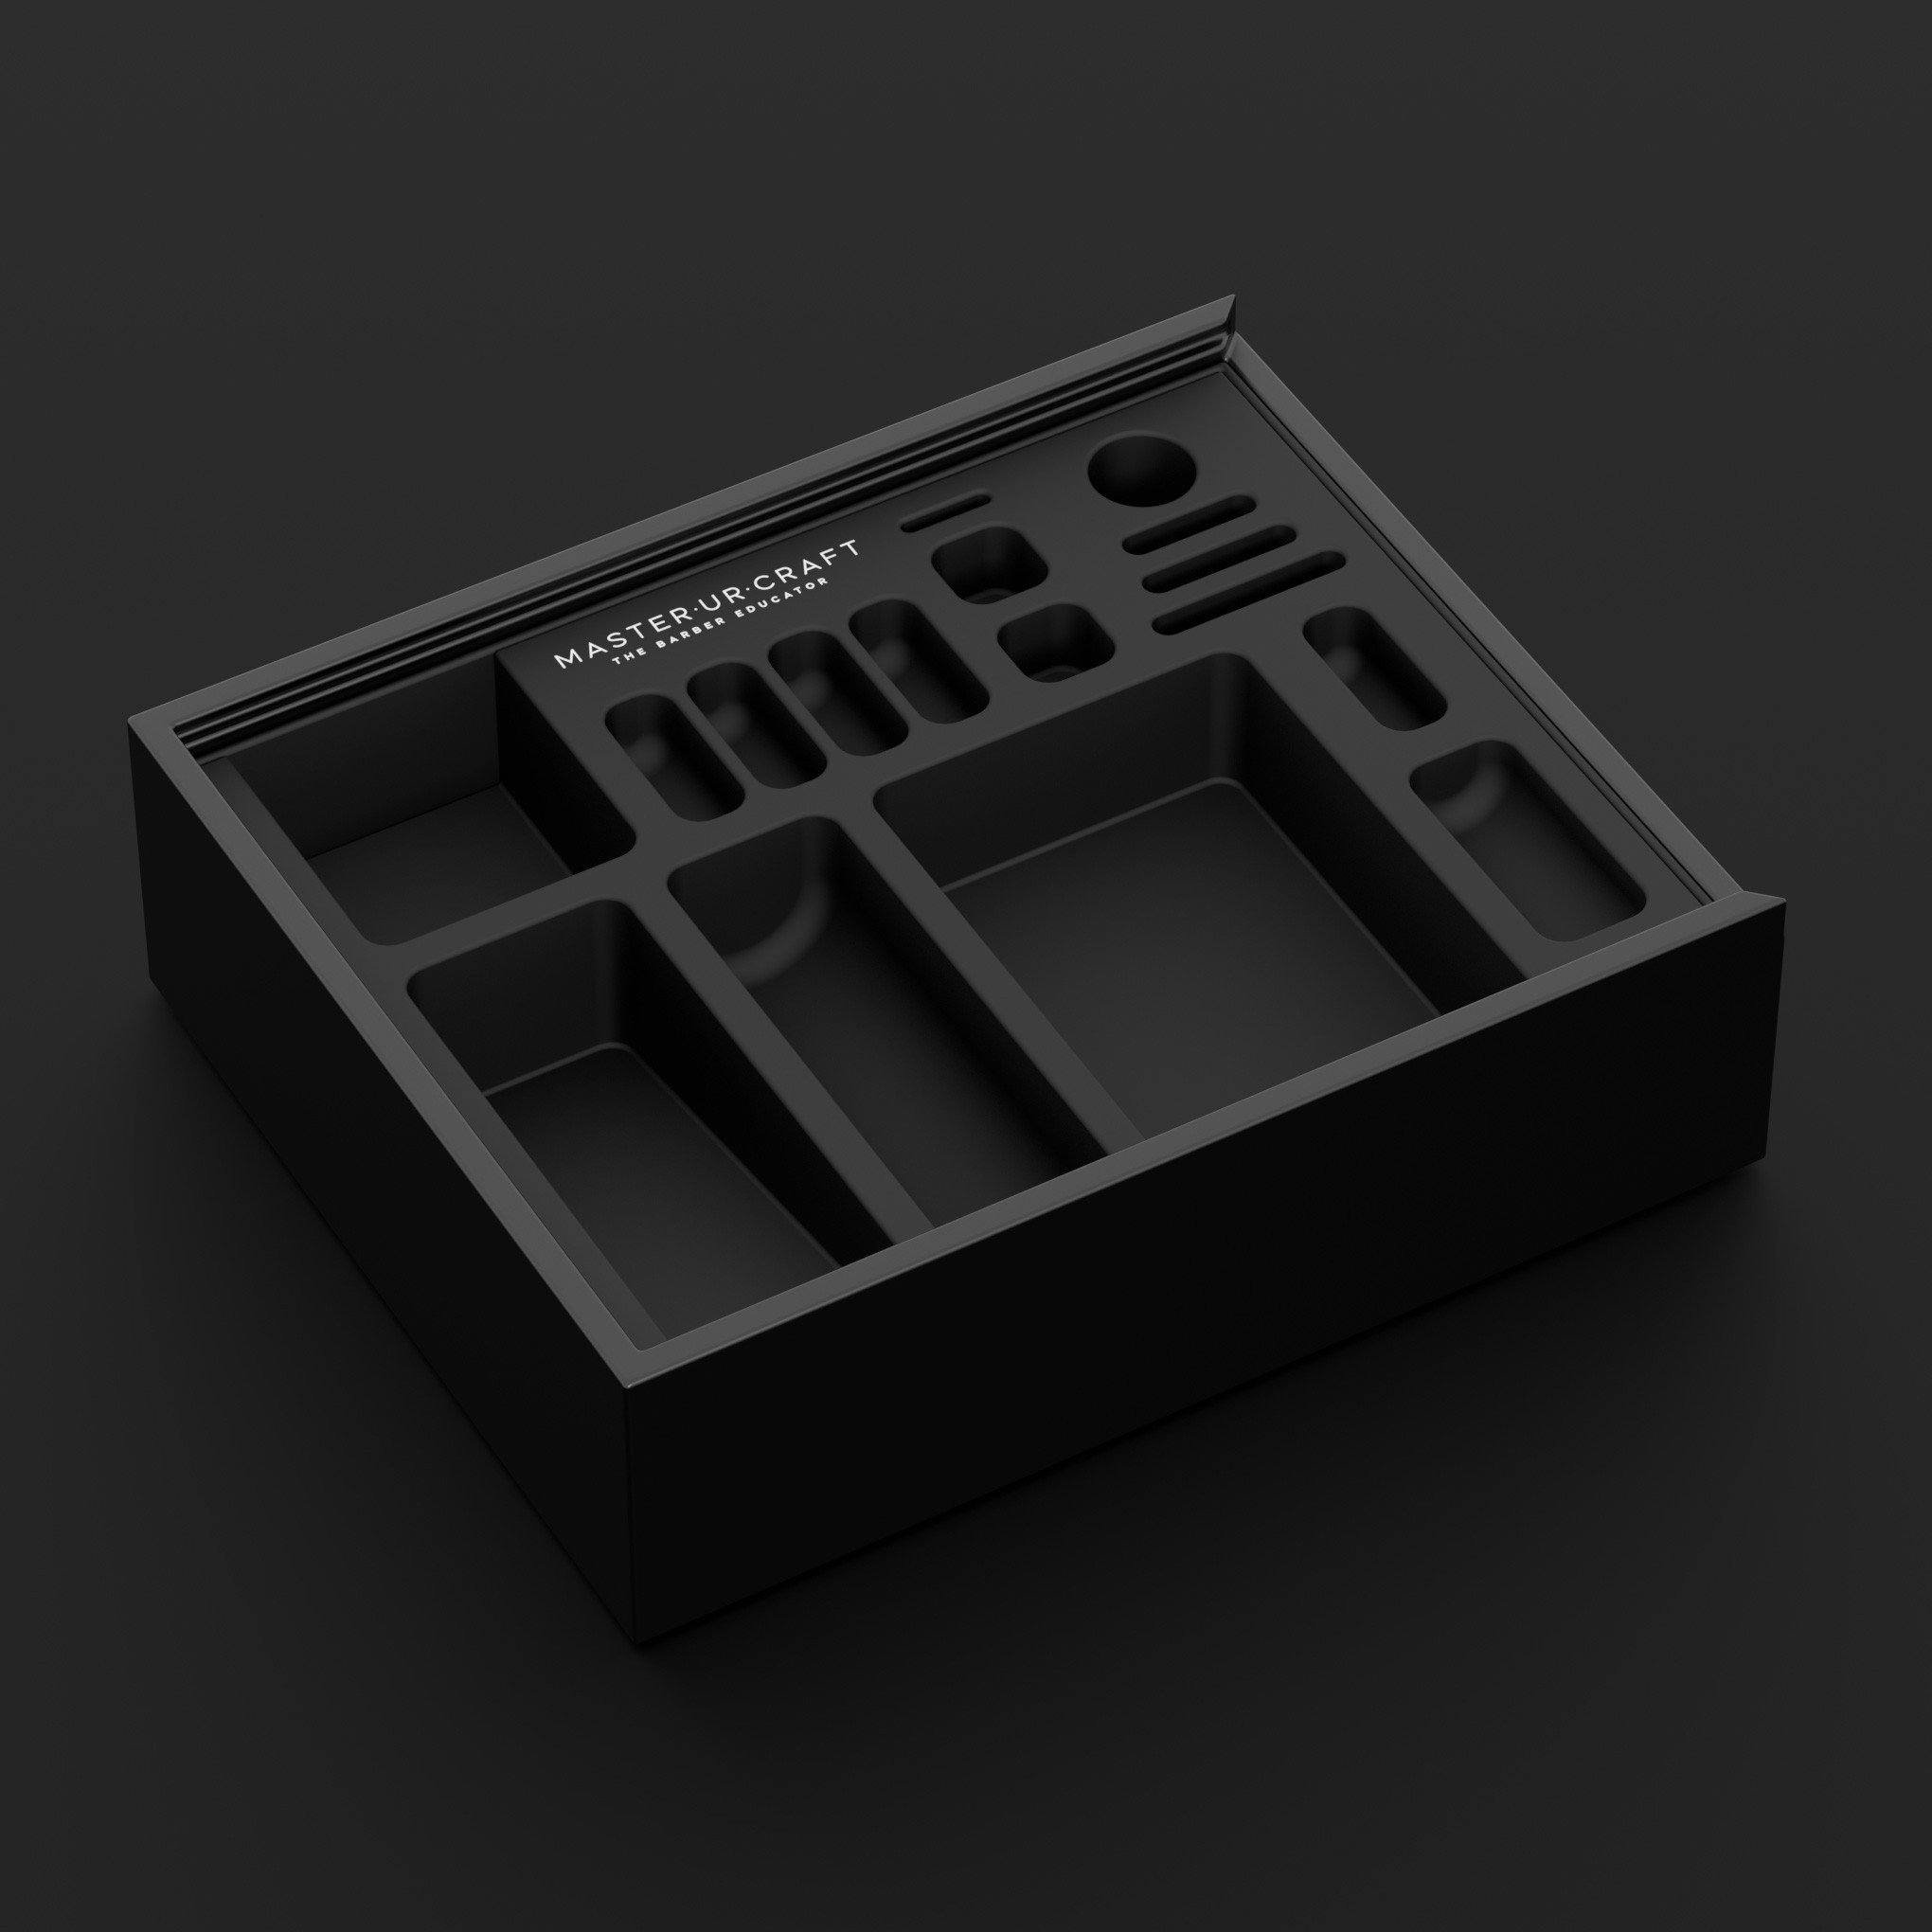 *Masterurcraft Barber Rental Box Insert